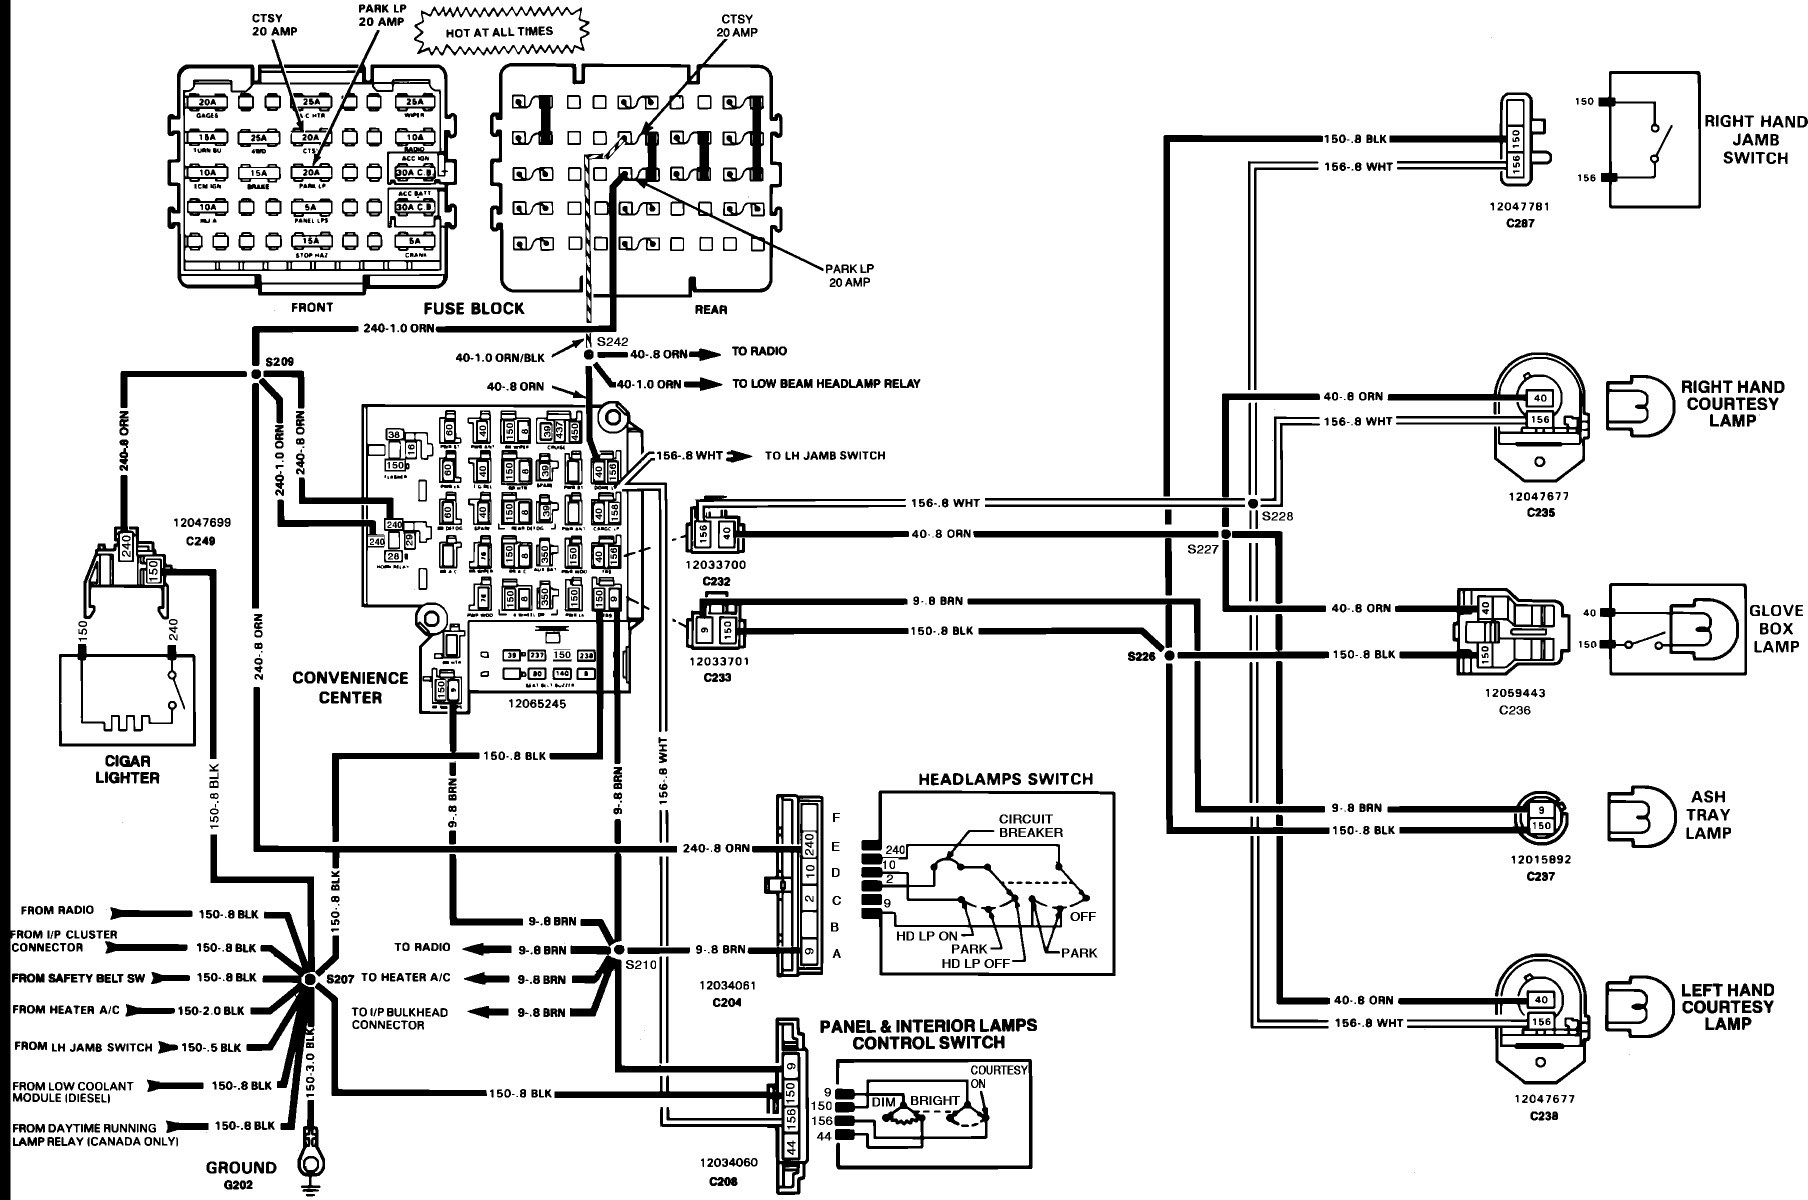 Gmc topkick electrical diagram imageresizertool